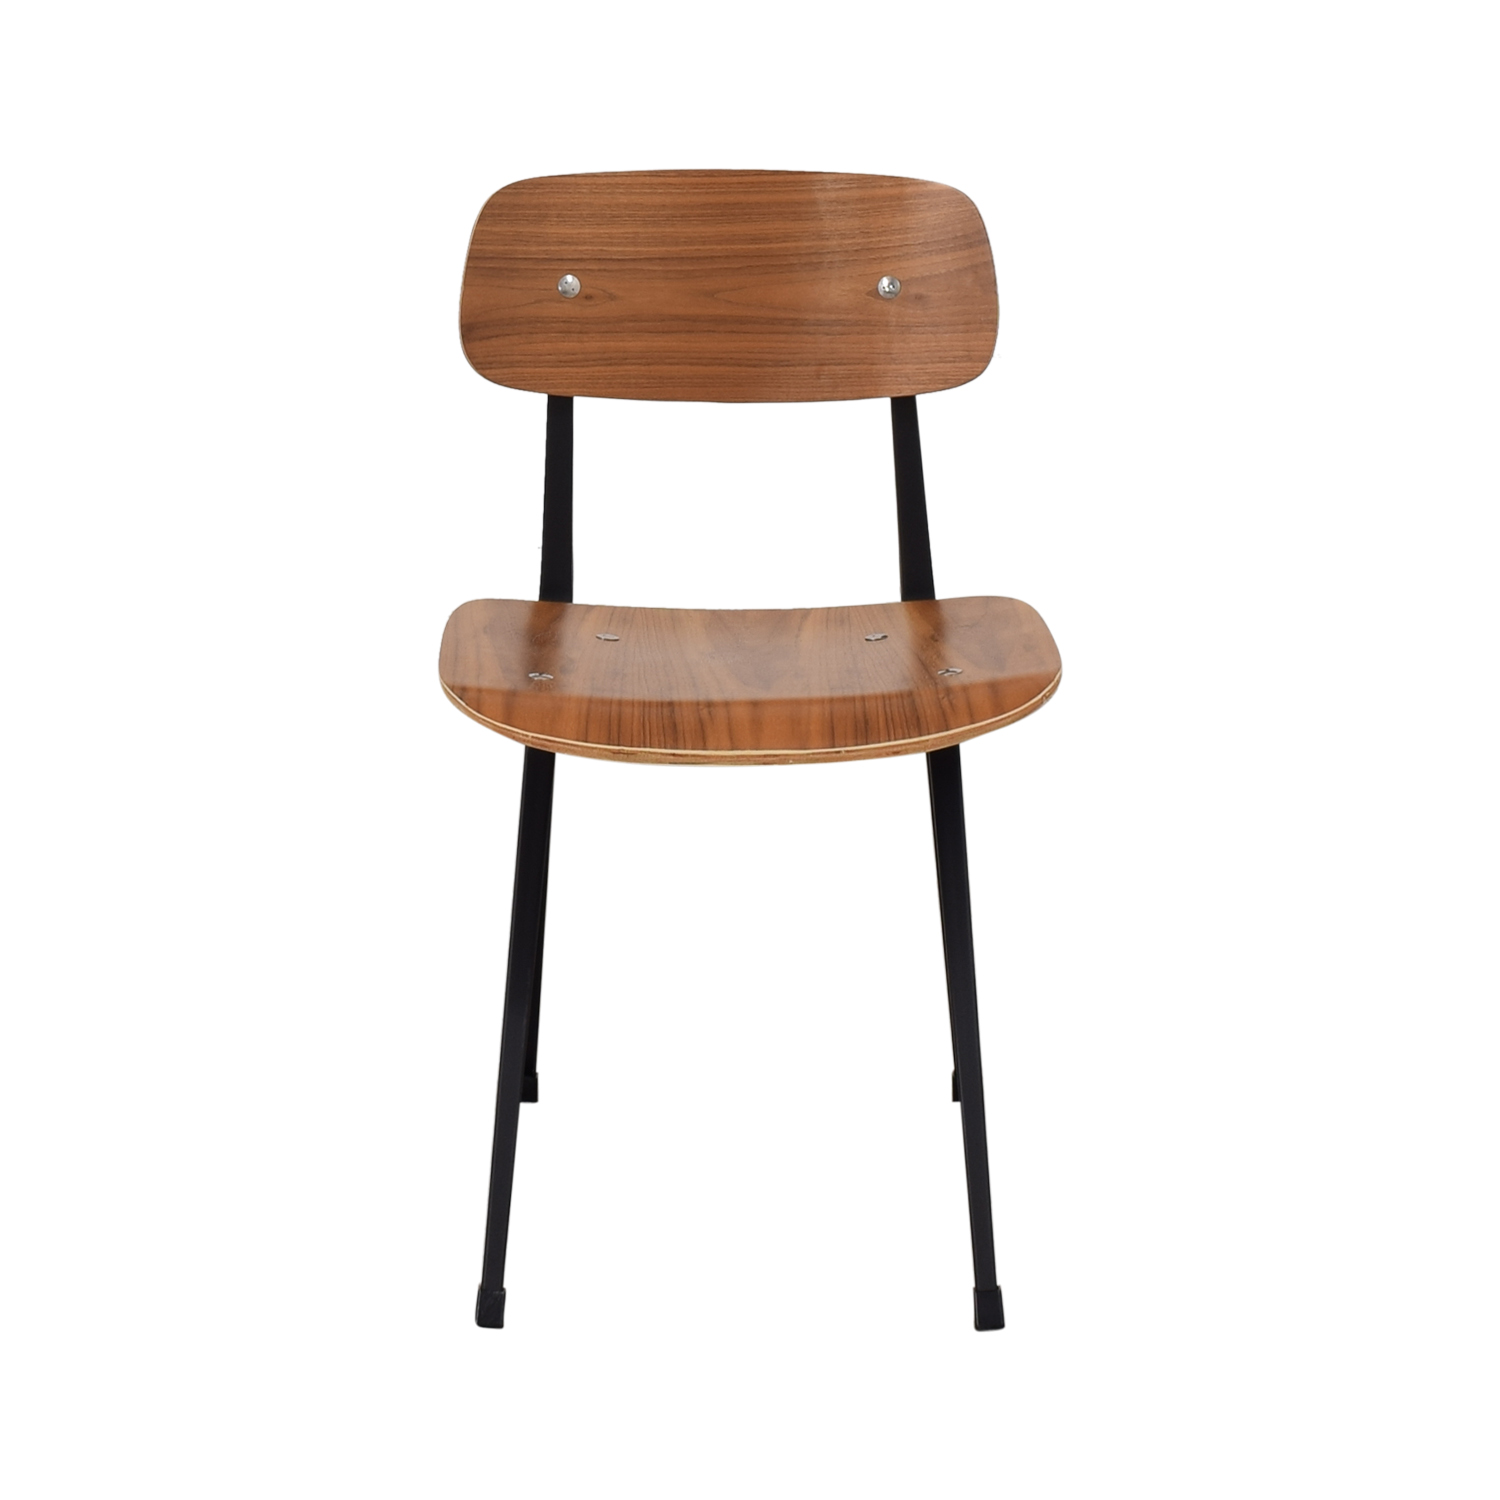 buy Organic Modernism Organic Modernism Cafe Walnut Dining Chair online